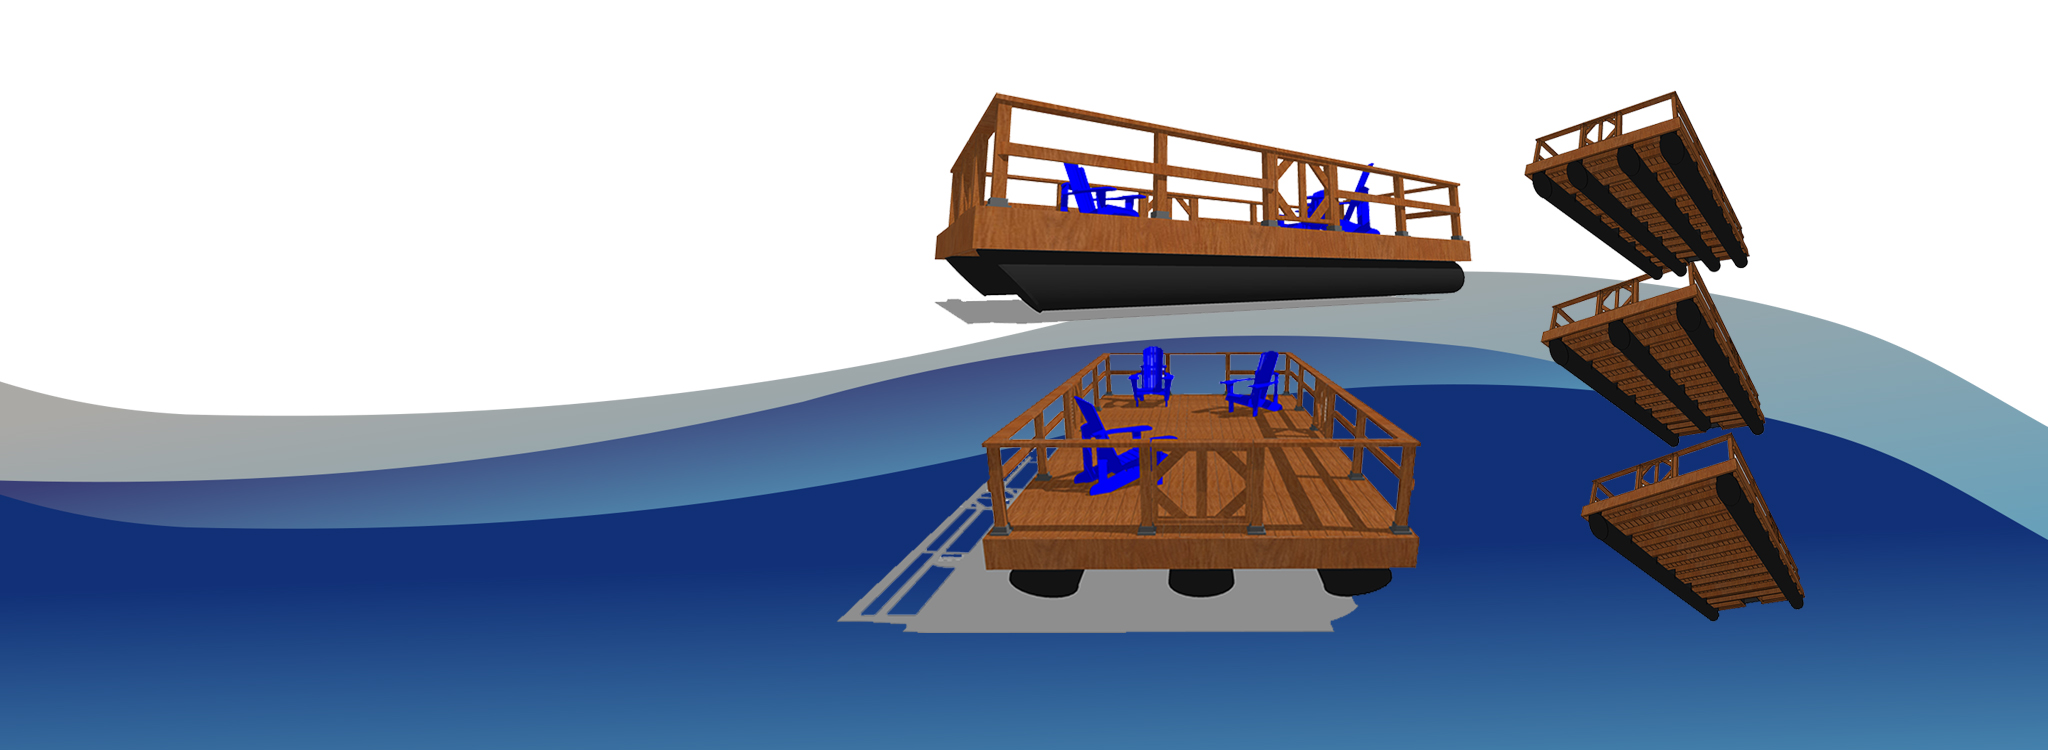 Dock Boats - NyDock Floating Docks & Pontoons PipeFusion in